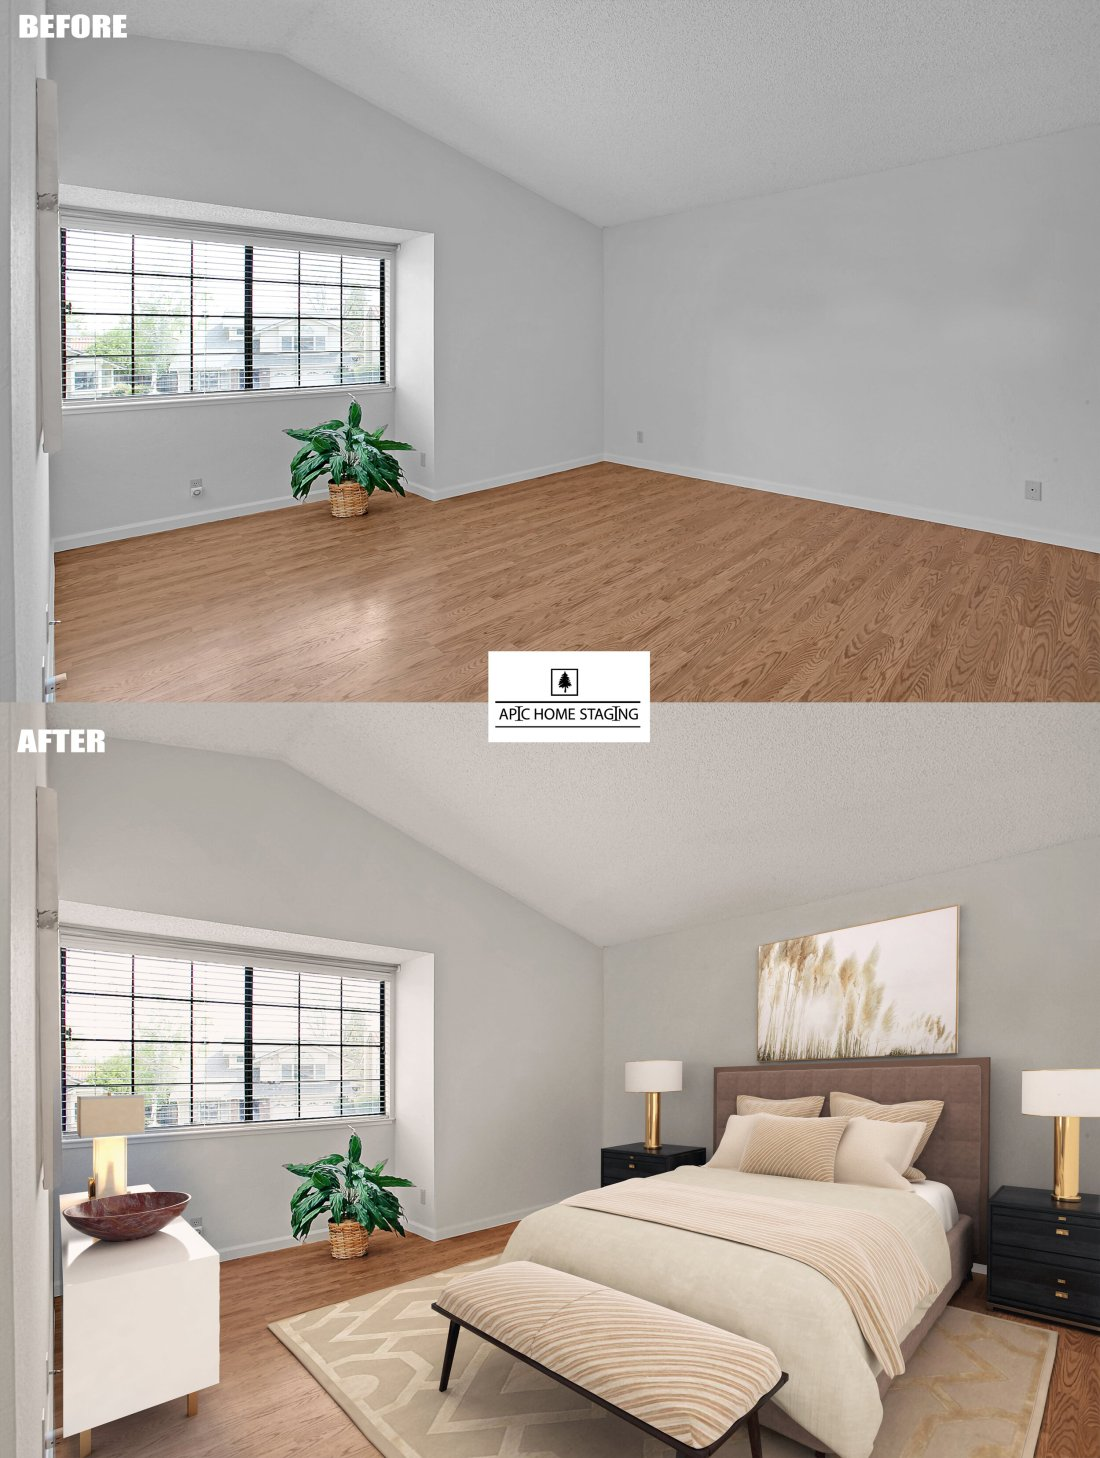 apic+home+staging